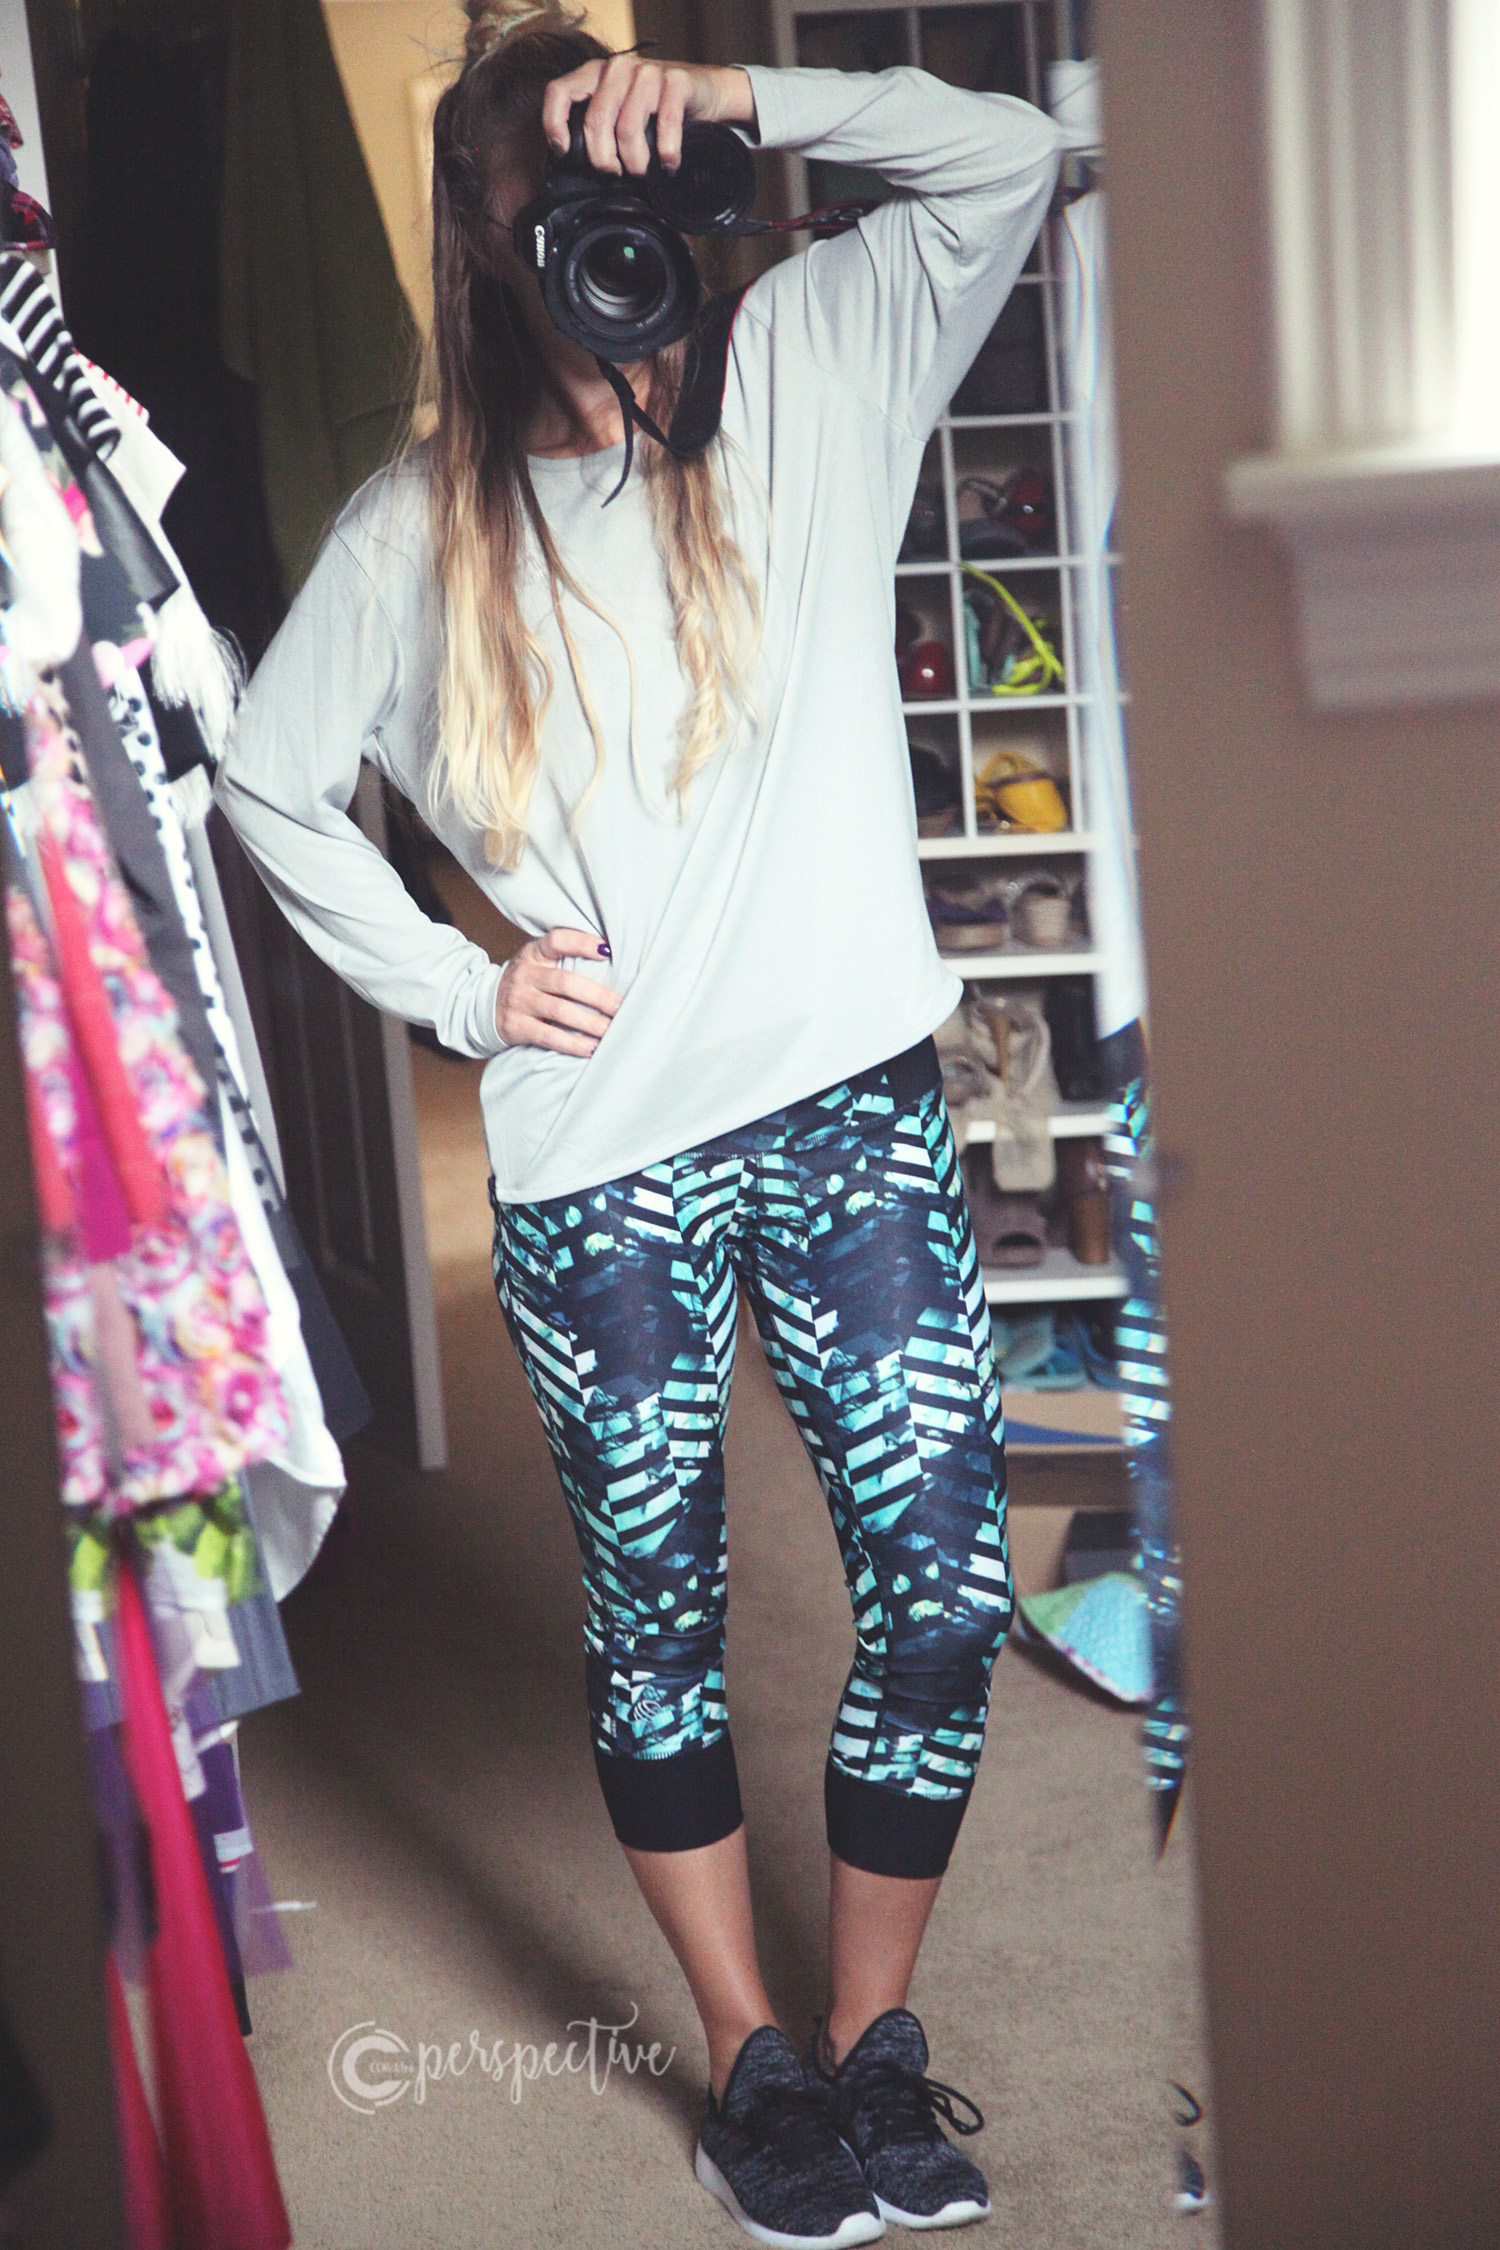 athleisure wear, leggings, cute workout clothes